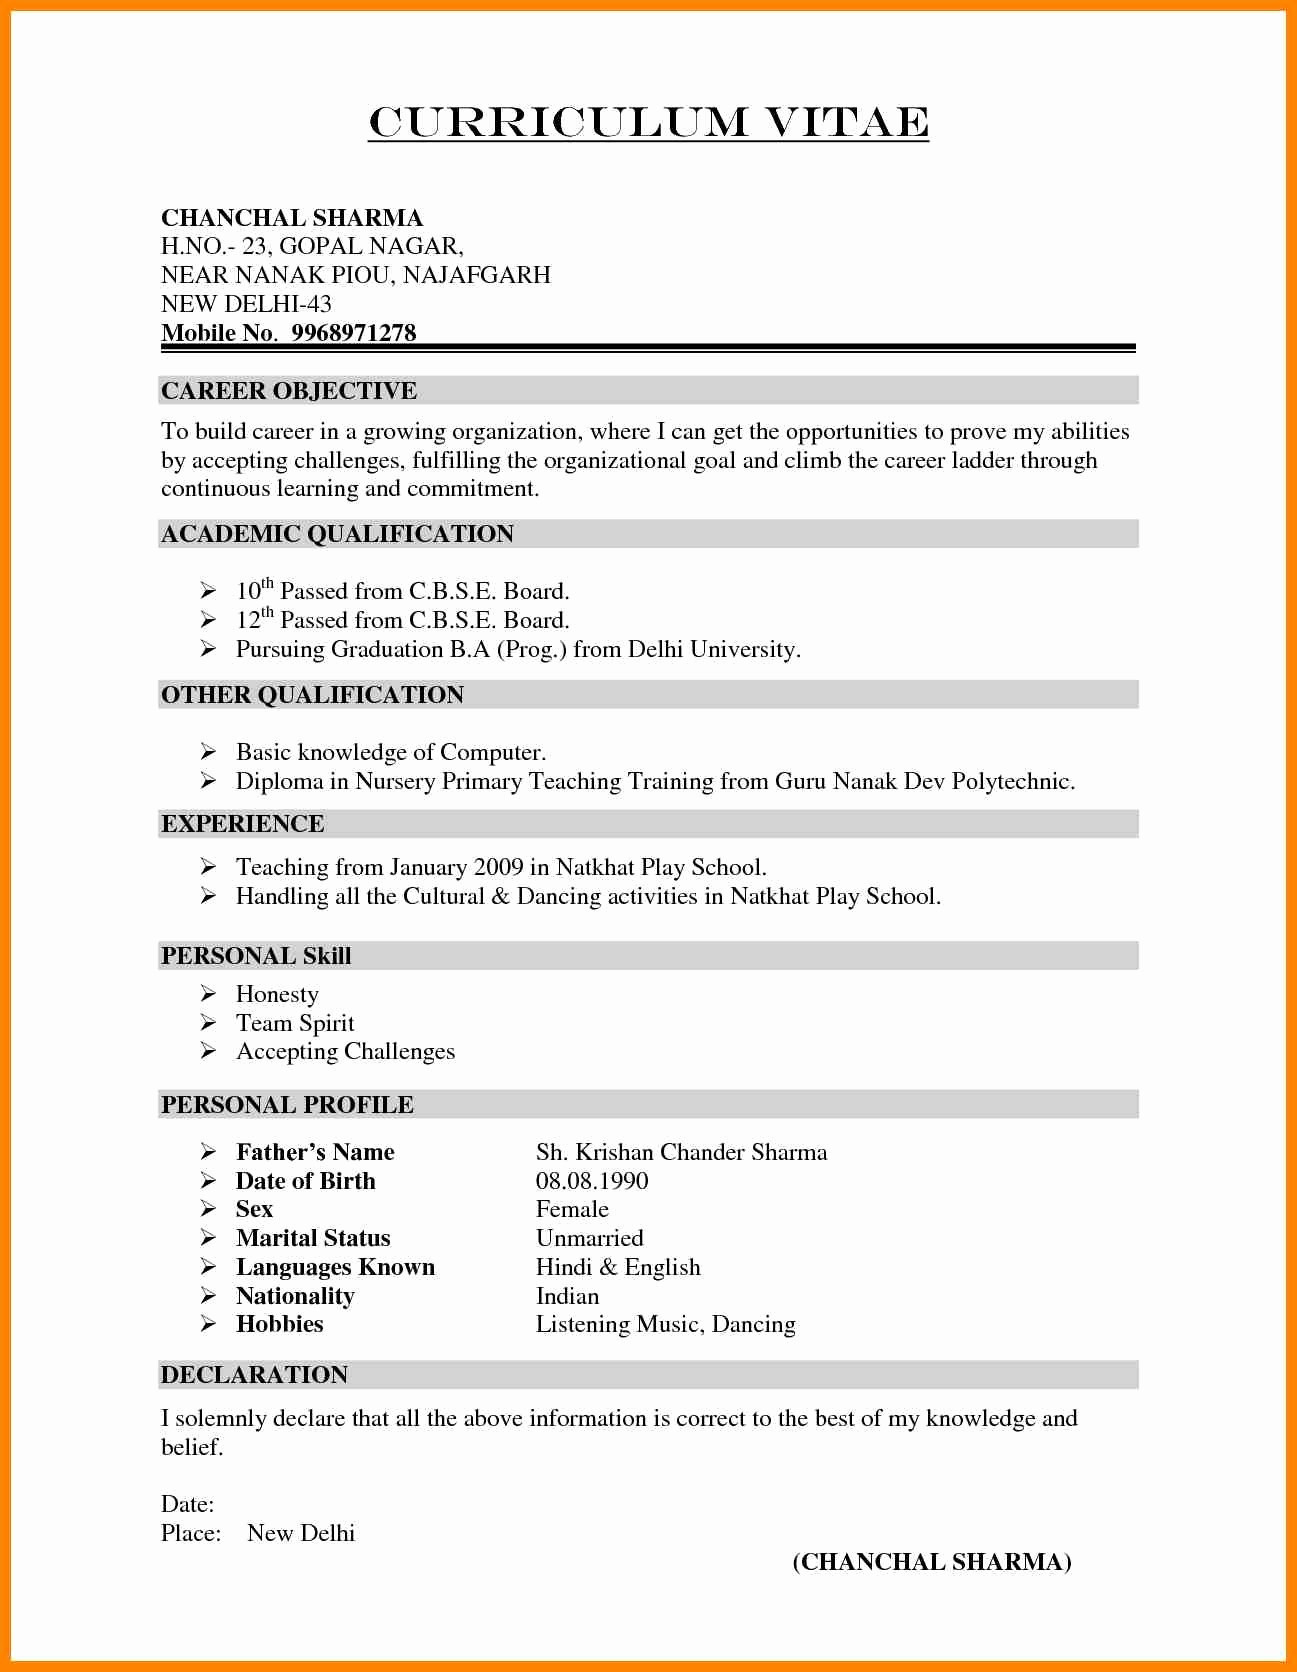 Resume Format Civil Engineer Professional Template Pdf Curriculum ... Engineering Student Resume Format Pdf